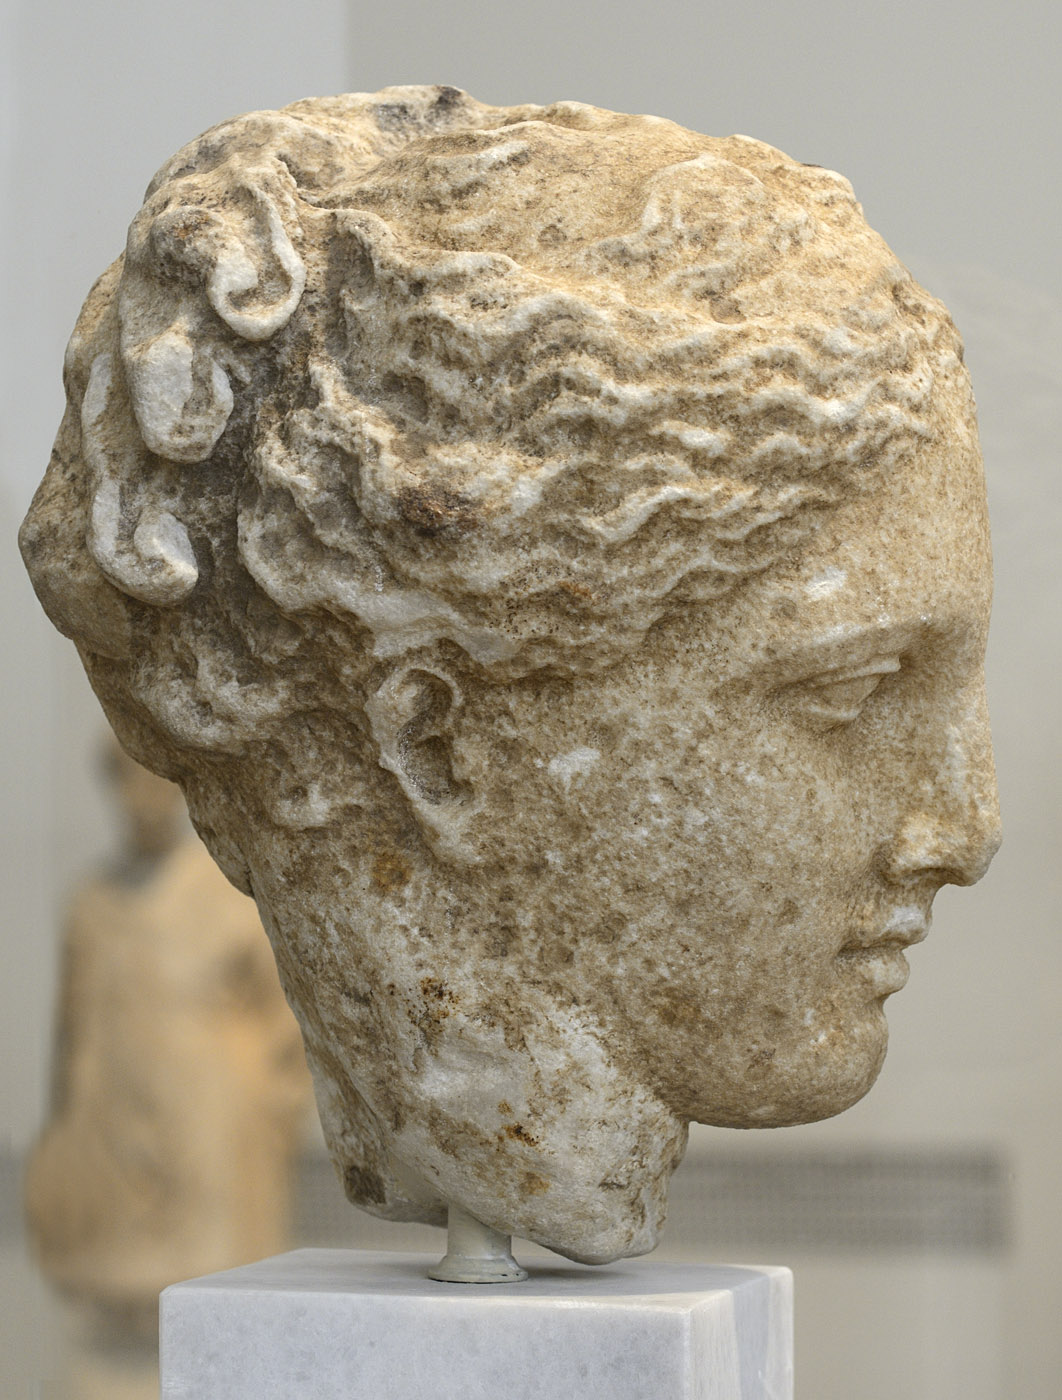 Female head (Hygieia?). Marble. Greek work, 350—325 BCE. Inv. No. 3602. Athens, National Archaeological Museum